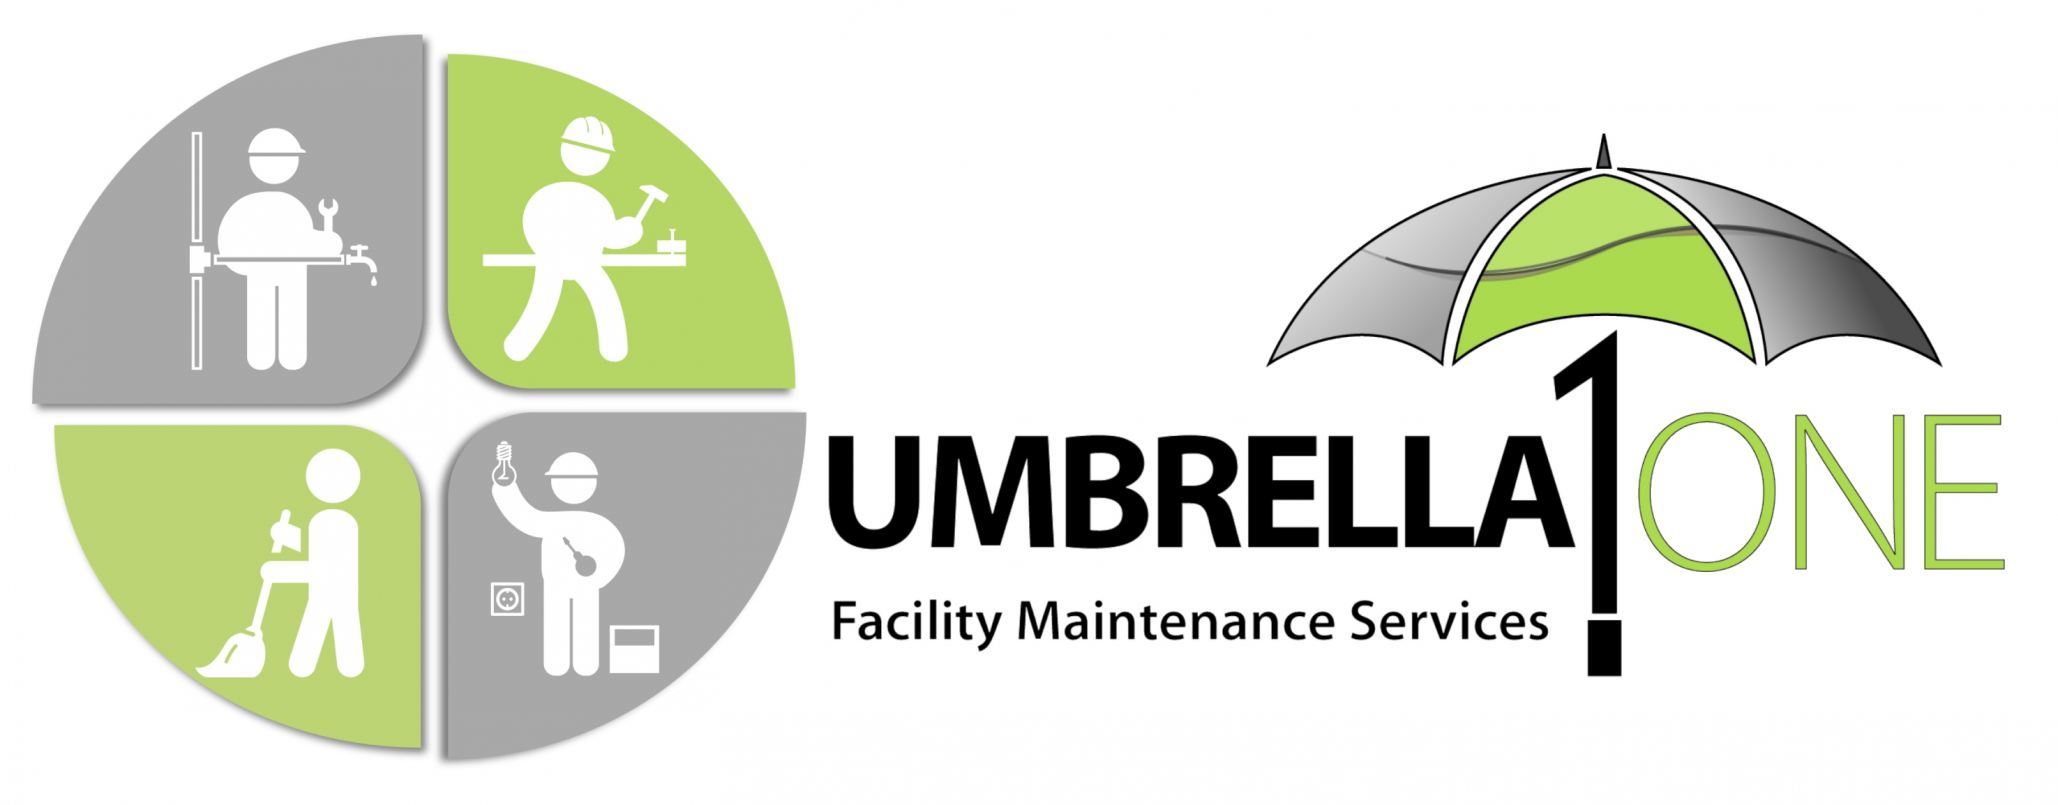 UmbrellaOne: Facility Maintenance Services